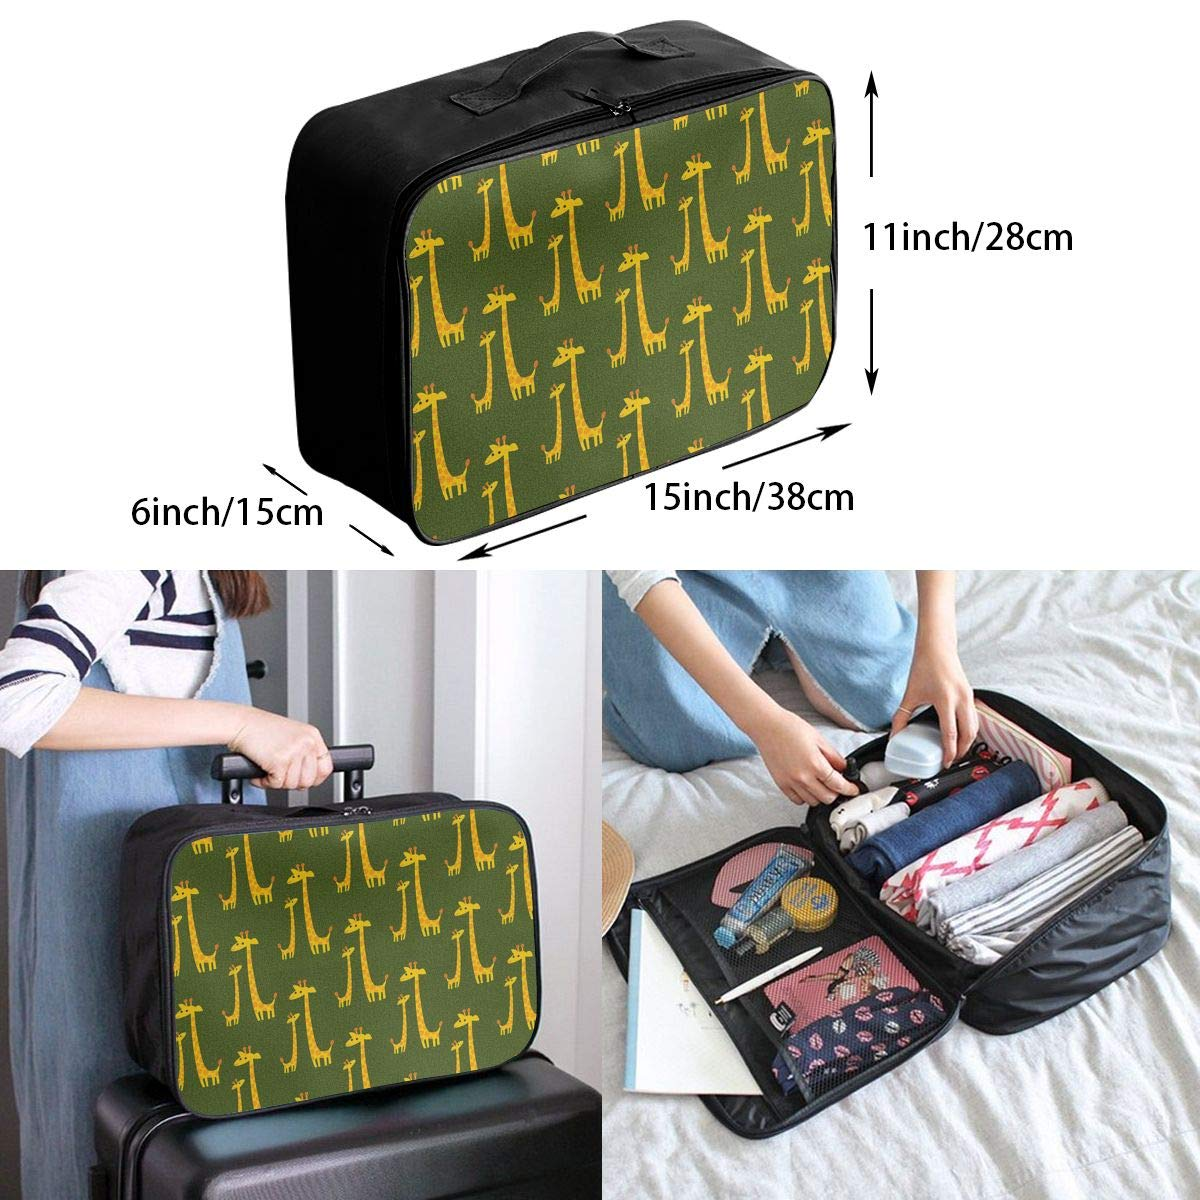 Cartoon Giraffe Travel Duffel Bag Waterproof Fashion Lightweight Large Capacity Portable Luggage Bag